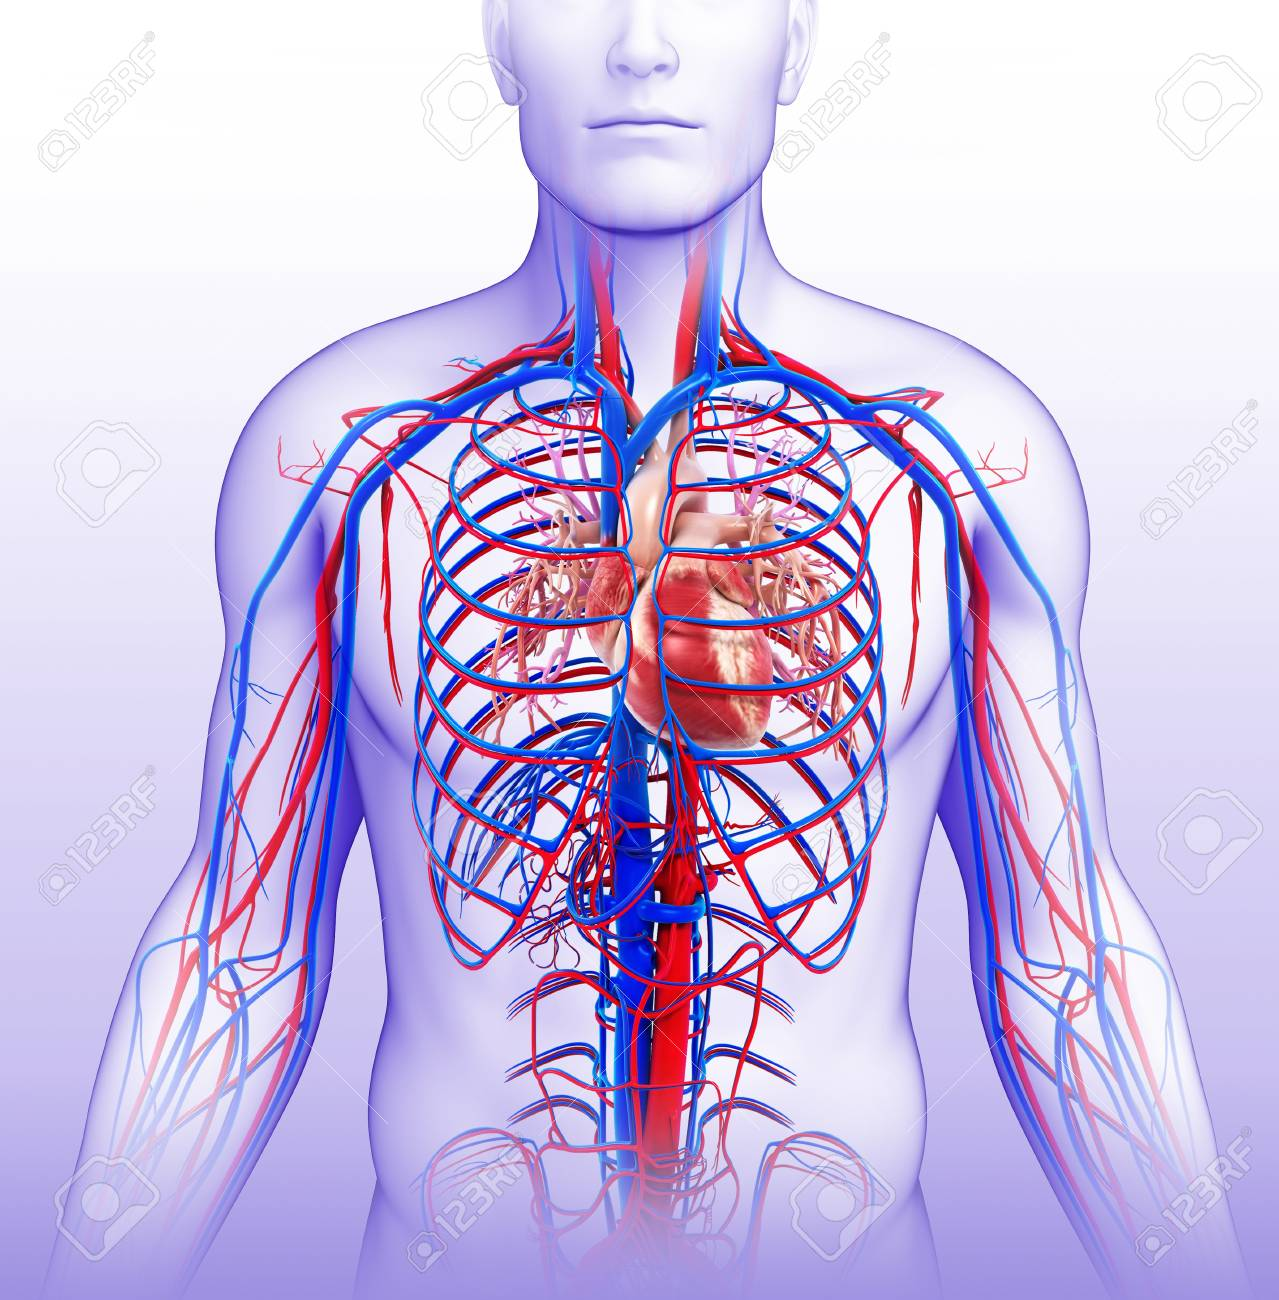 human vascular anatomy diagram 2008 ford f150 trailer wiring system illustration stock photo picture and royalty 76616058